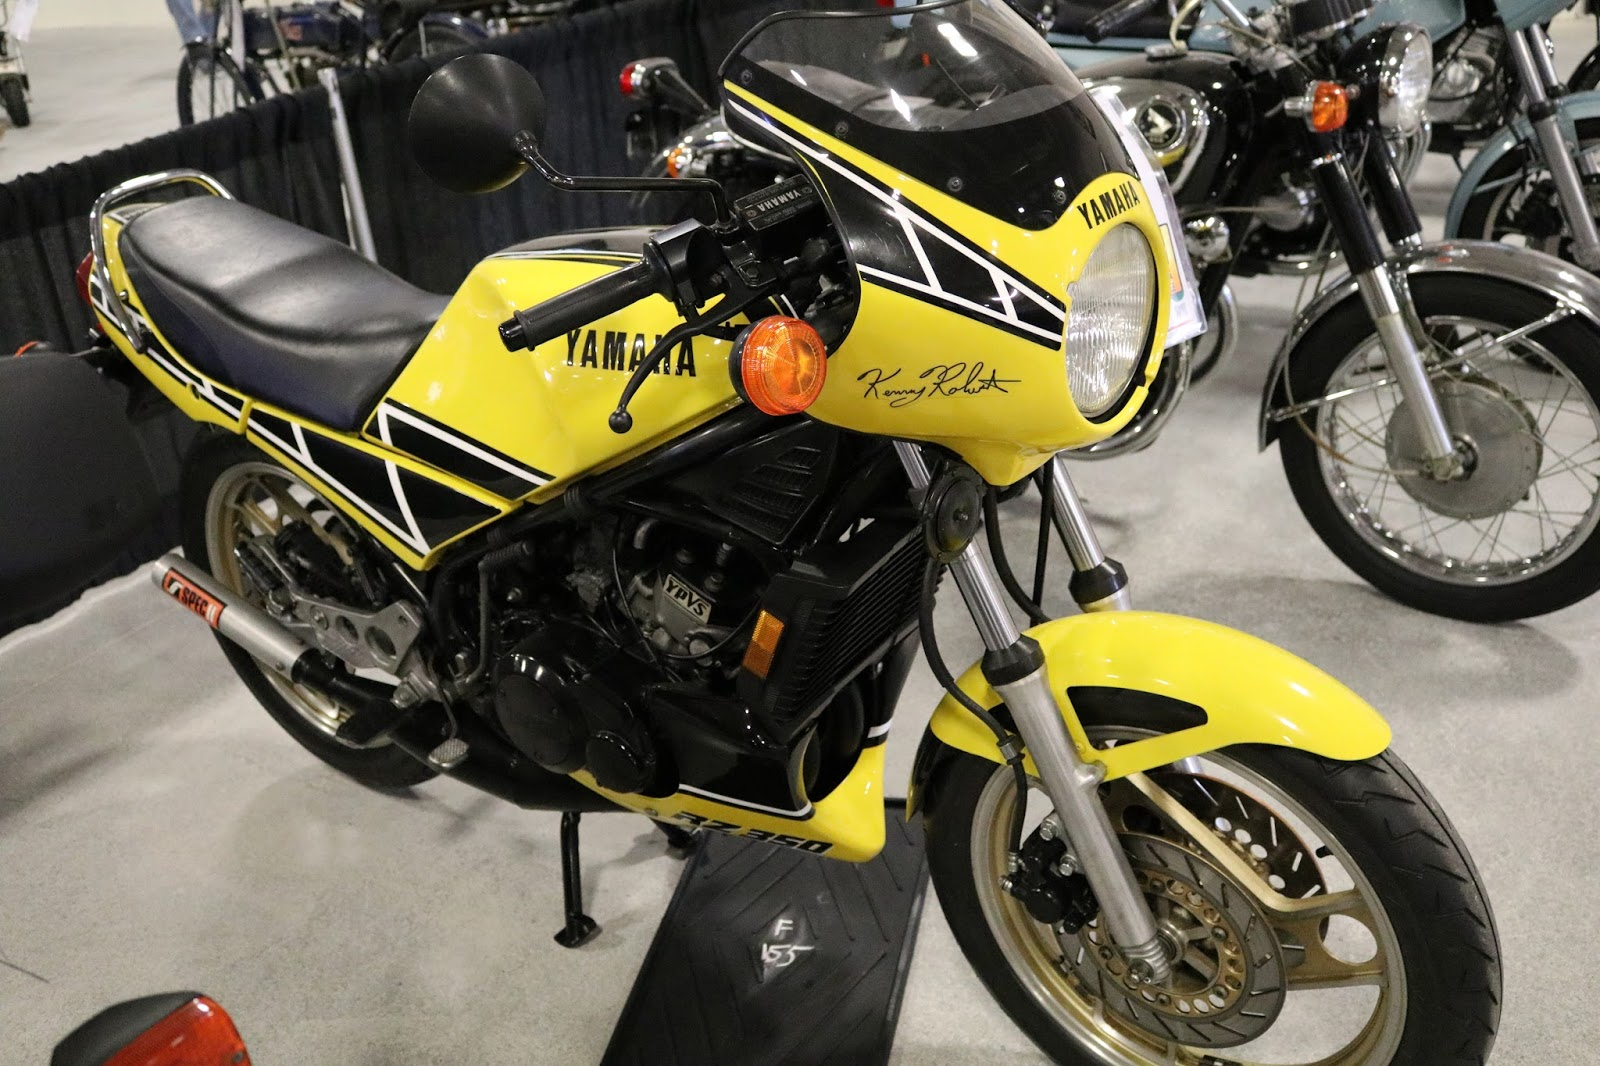 OldMotoDude: 1984 Yamaha RZ350 sold for $6,000 at the 2017